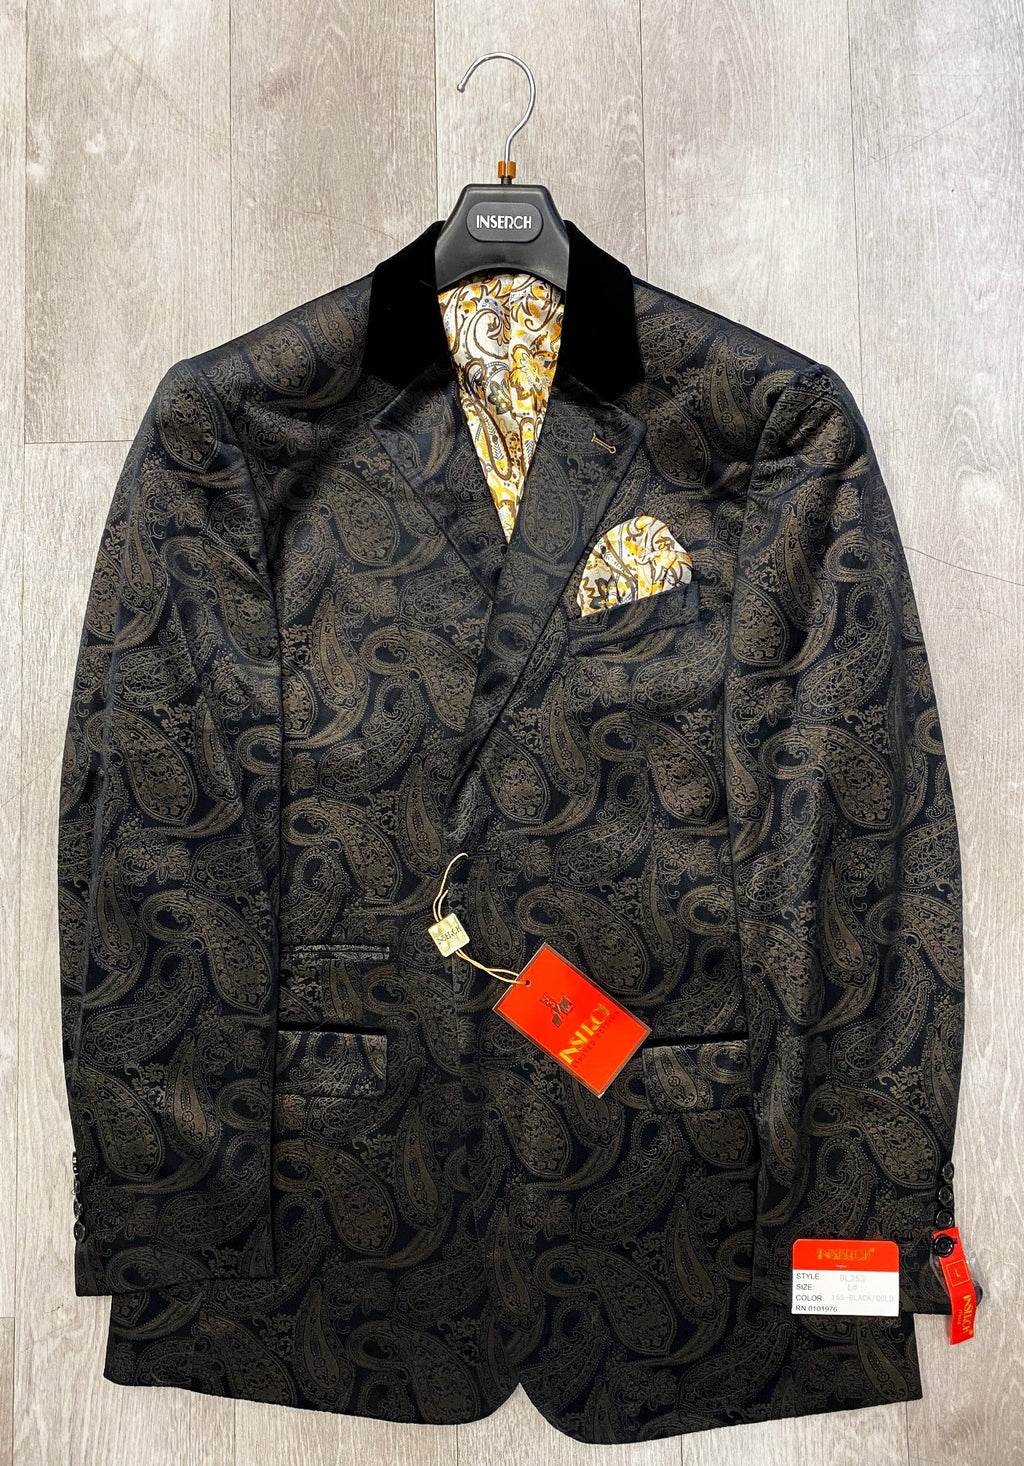 Inserch Two Button Printed Paisley Velvet Blazer BL253-165